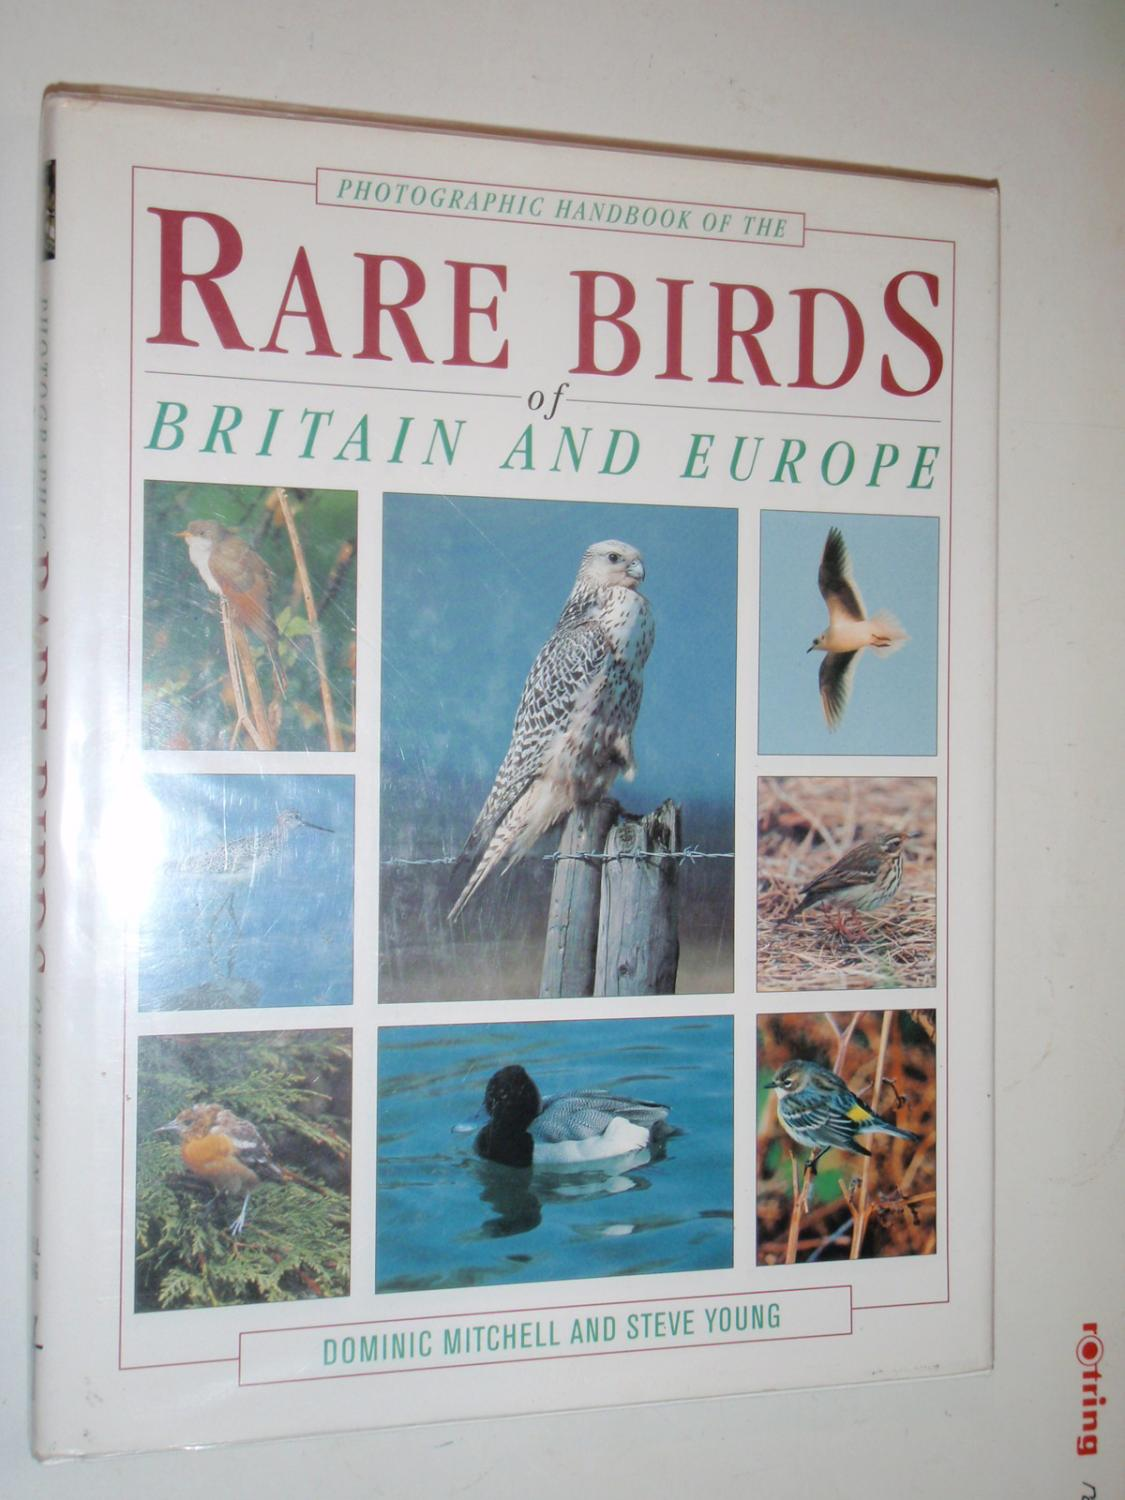 Photographic Handbook to the Rare Birds of Britain and Europe - Mitchell, Dominic; Young, Steve